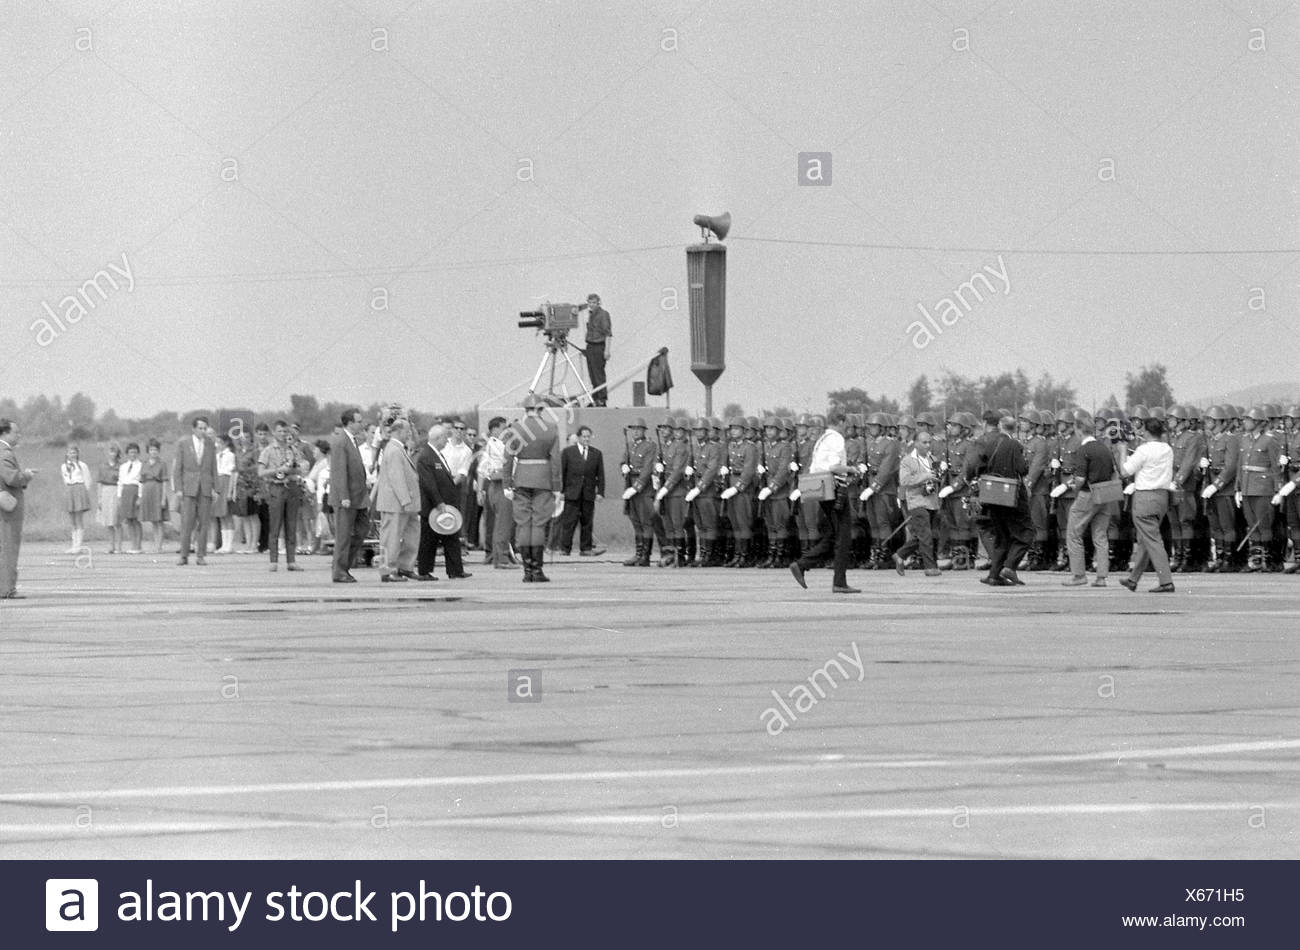 Khrushchev, Nikita Sergeyevich, 17.4.1894 - 11.9. 1971, Soviet politician, General Secretary of the Central Commitee of the Communist Party of the Soviet Union 1953 - 1964, visit to the German Democratic Republic, arrival at Schönefeld Airport, 17.1.1963, , Additional-Rights-Clearances-NA - Stock Image